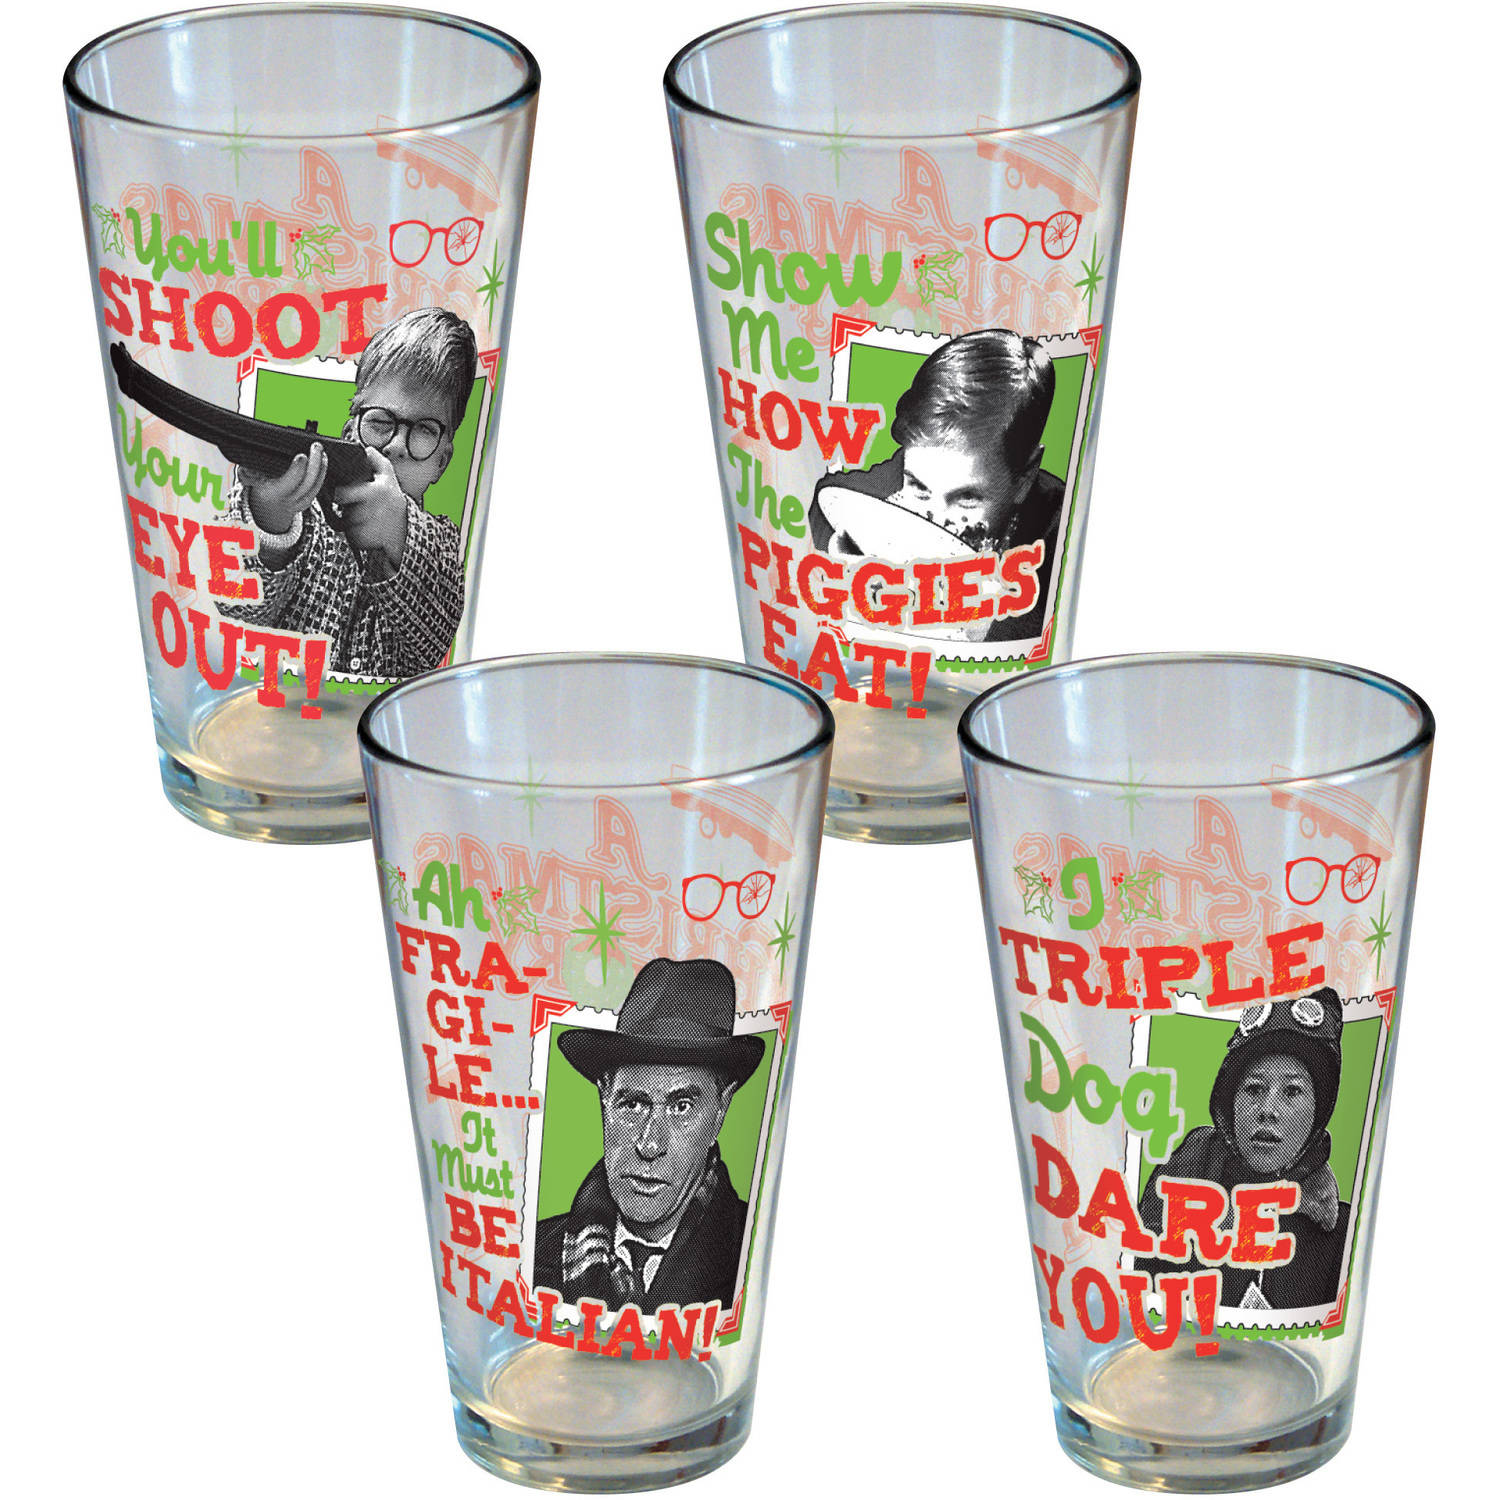 A Christmas Story Retro Pint Glasses, Set of 4 by ICUP